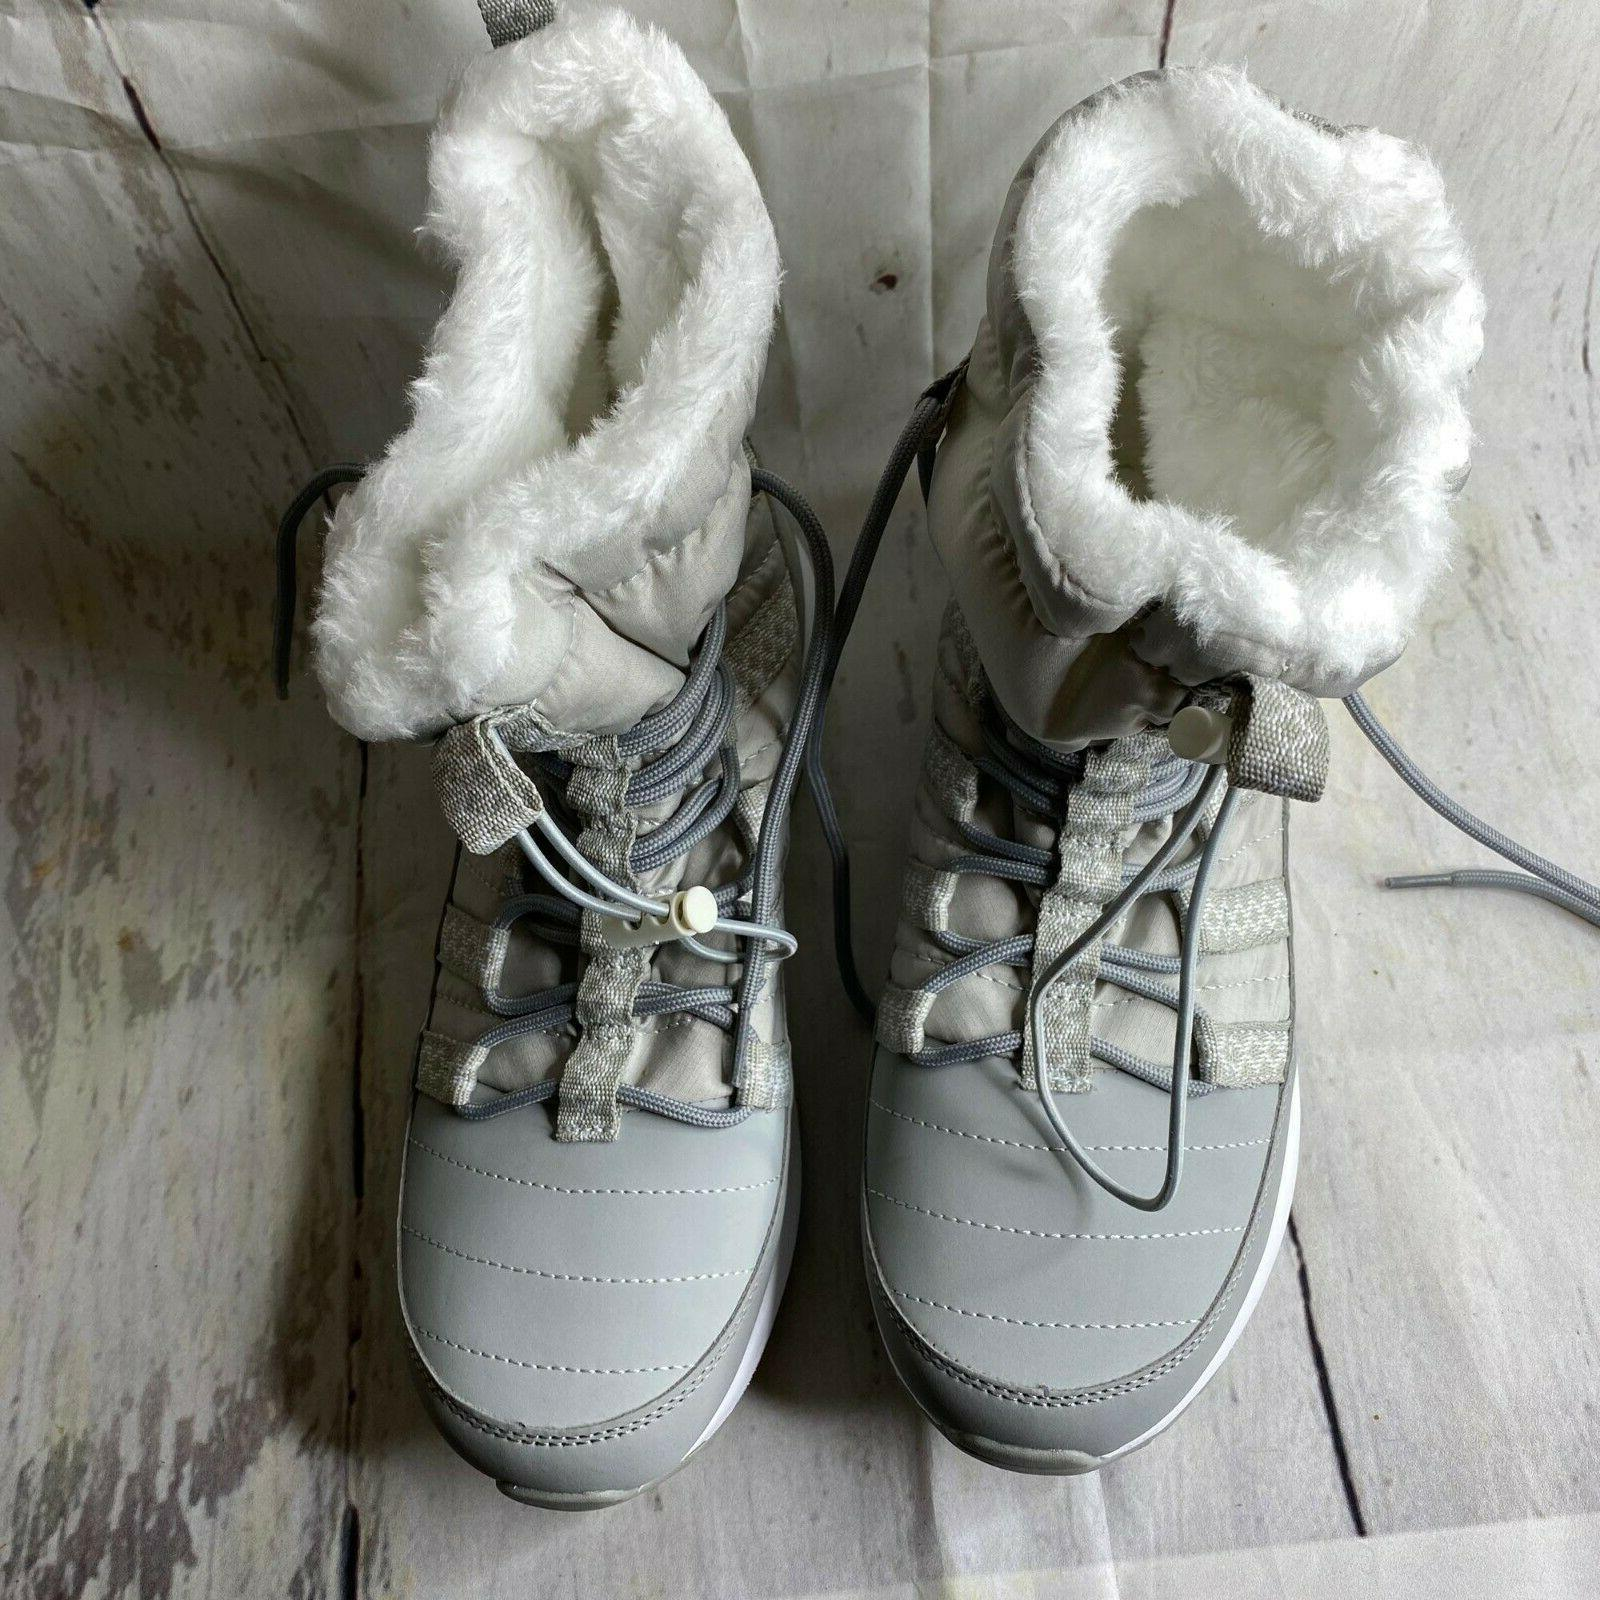 usa snow boot for men and women